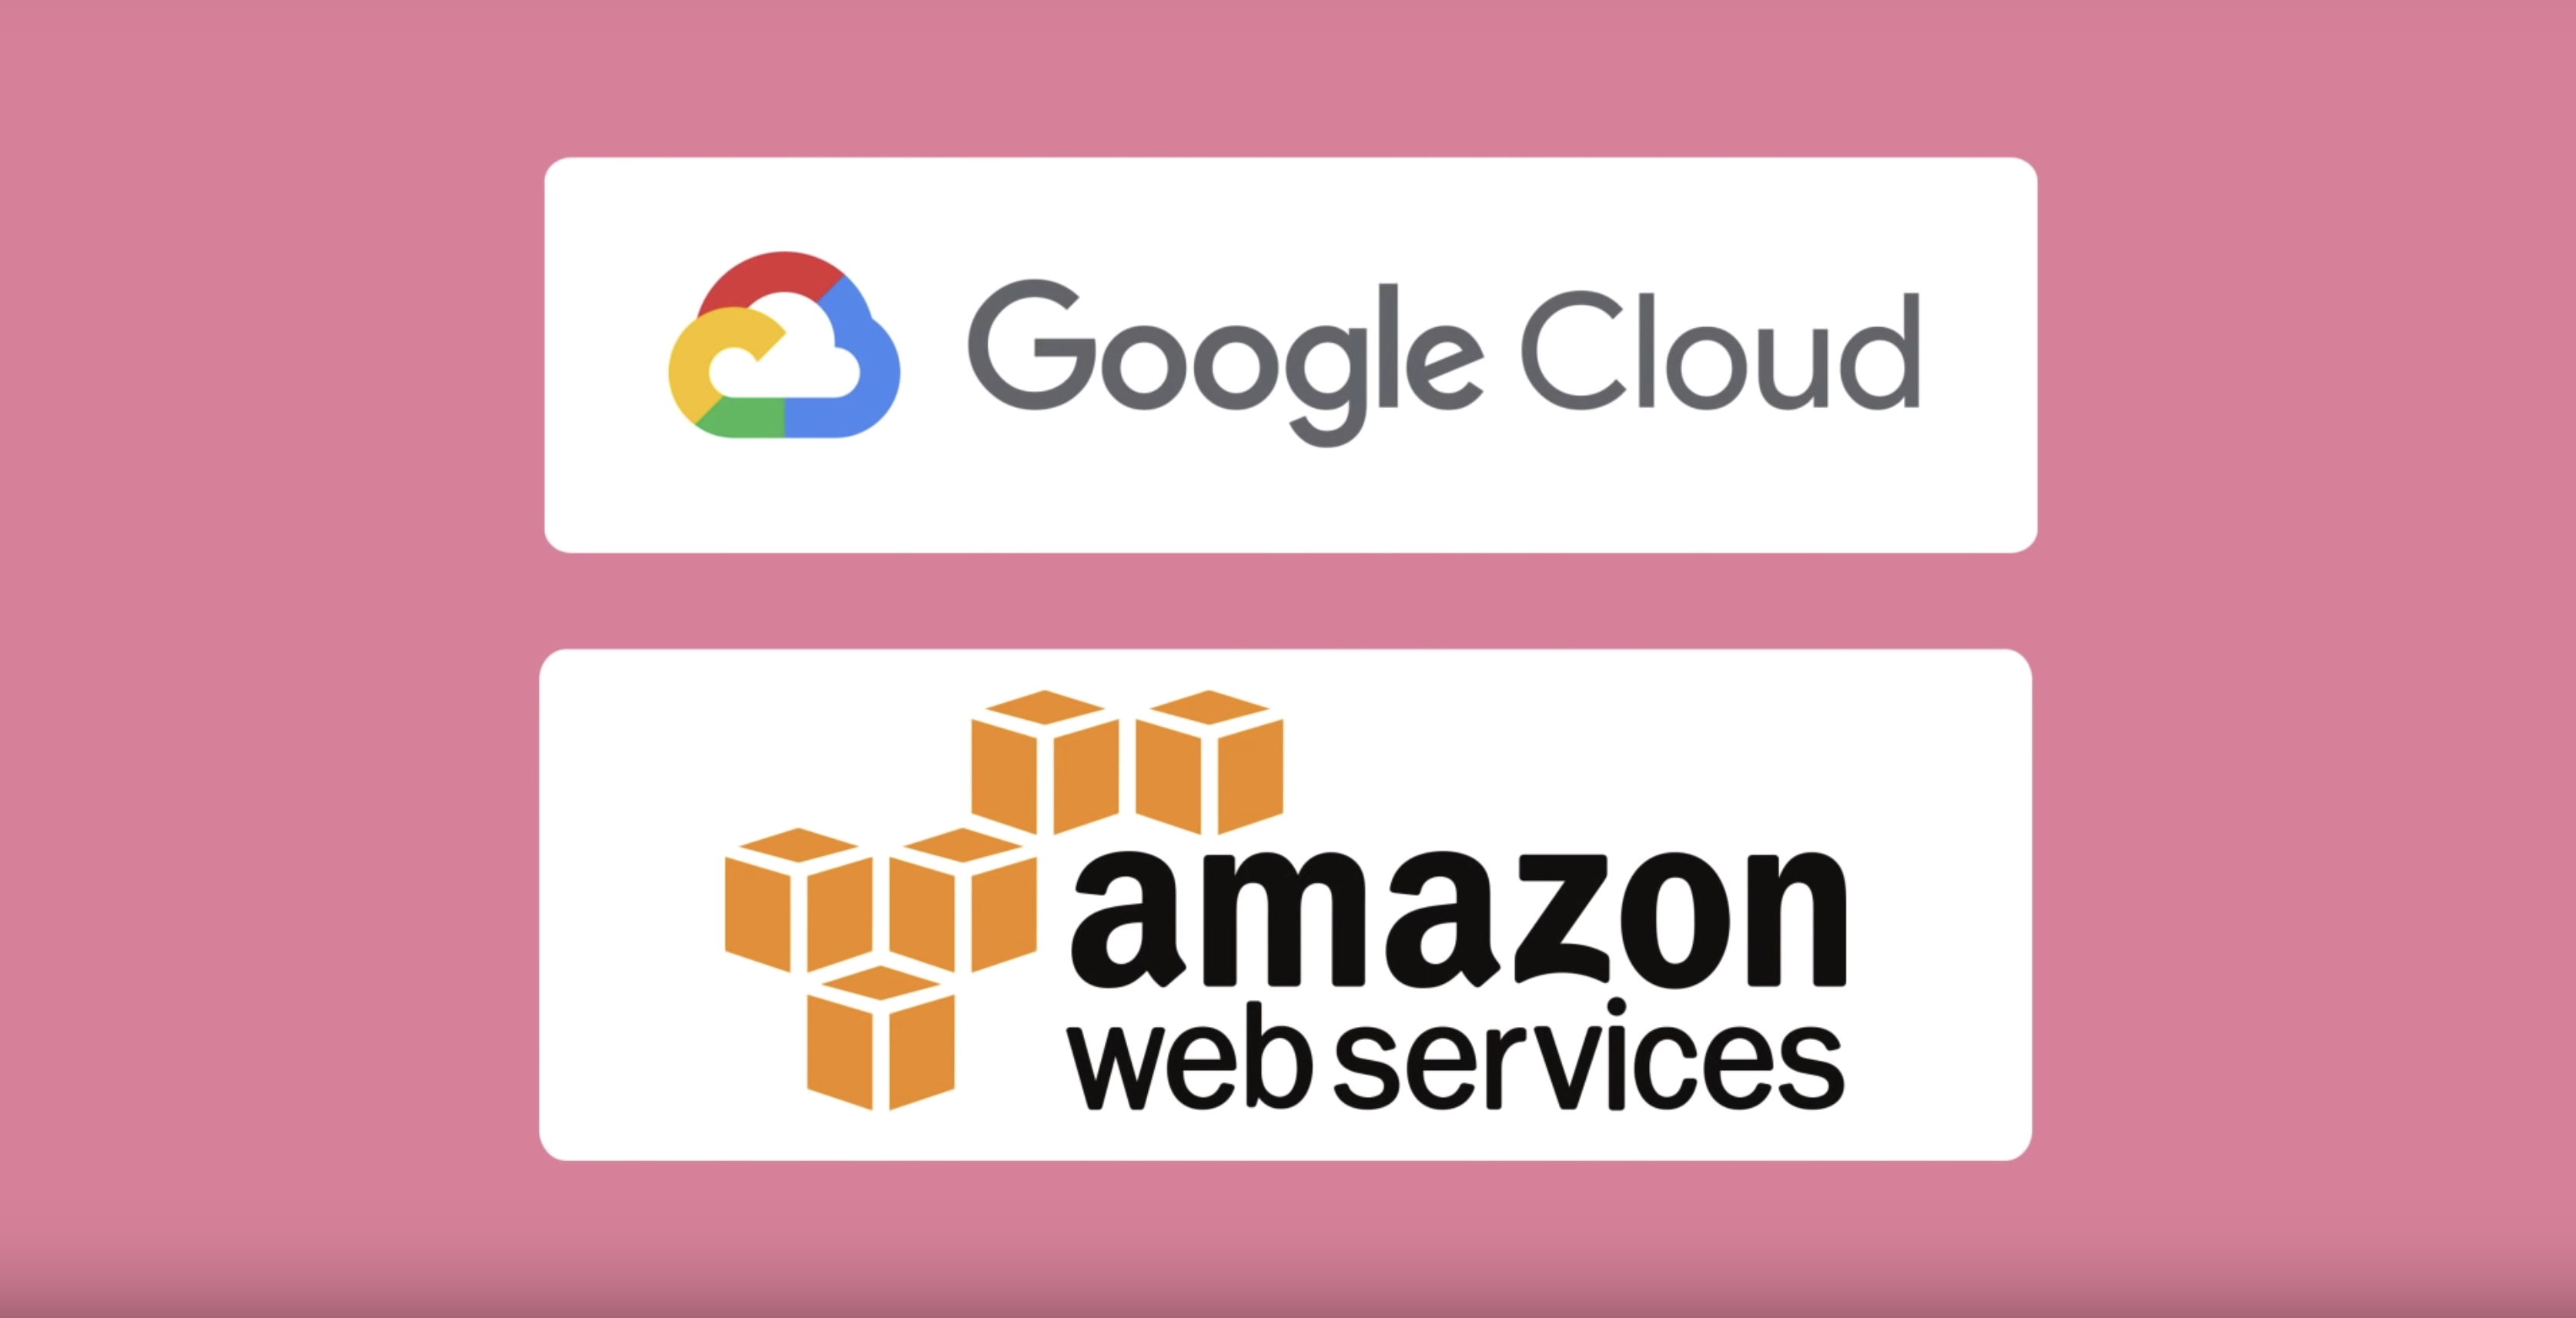 Google Cloud and Amazon Web Services